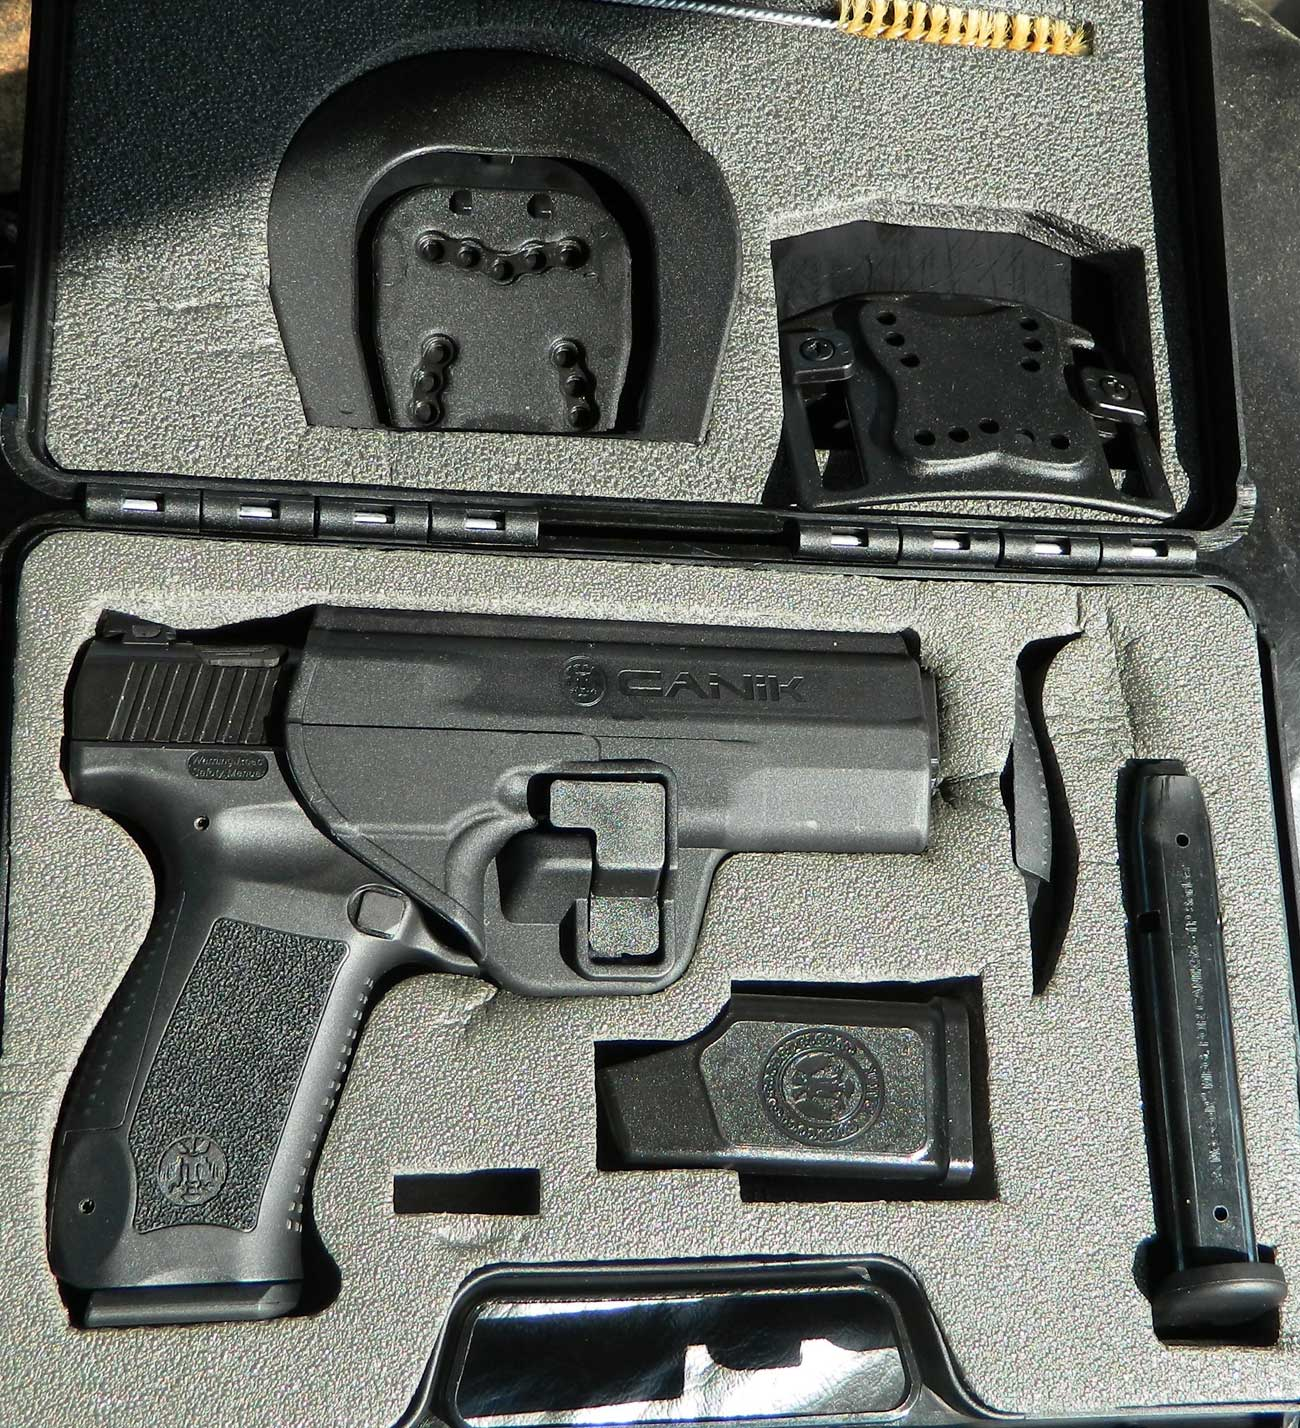 Canik 55 pistol, case, and accessories